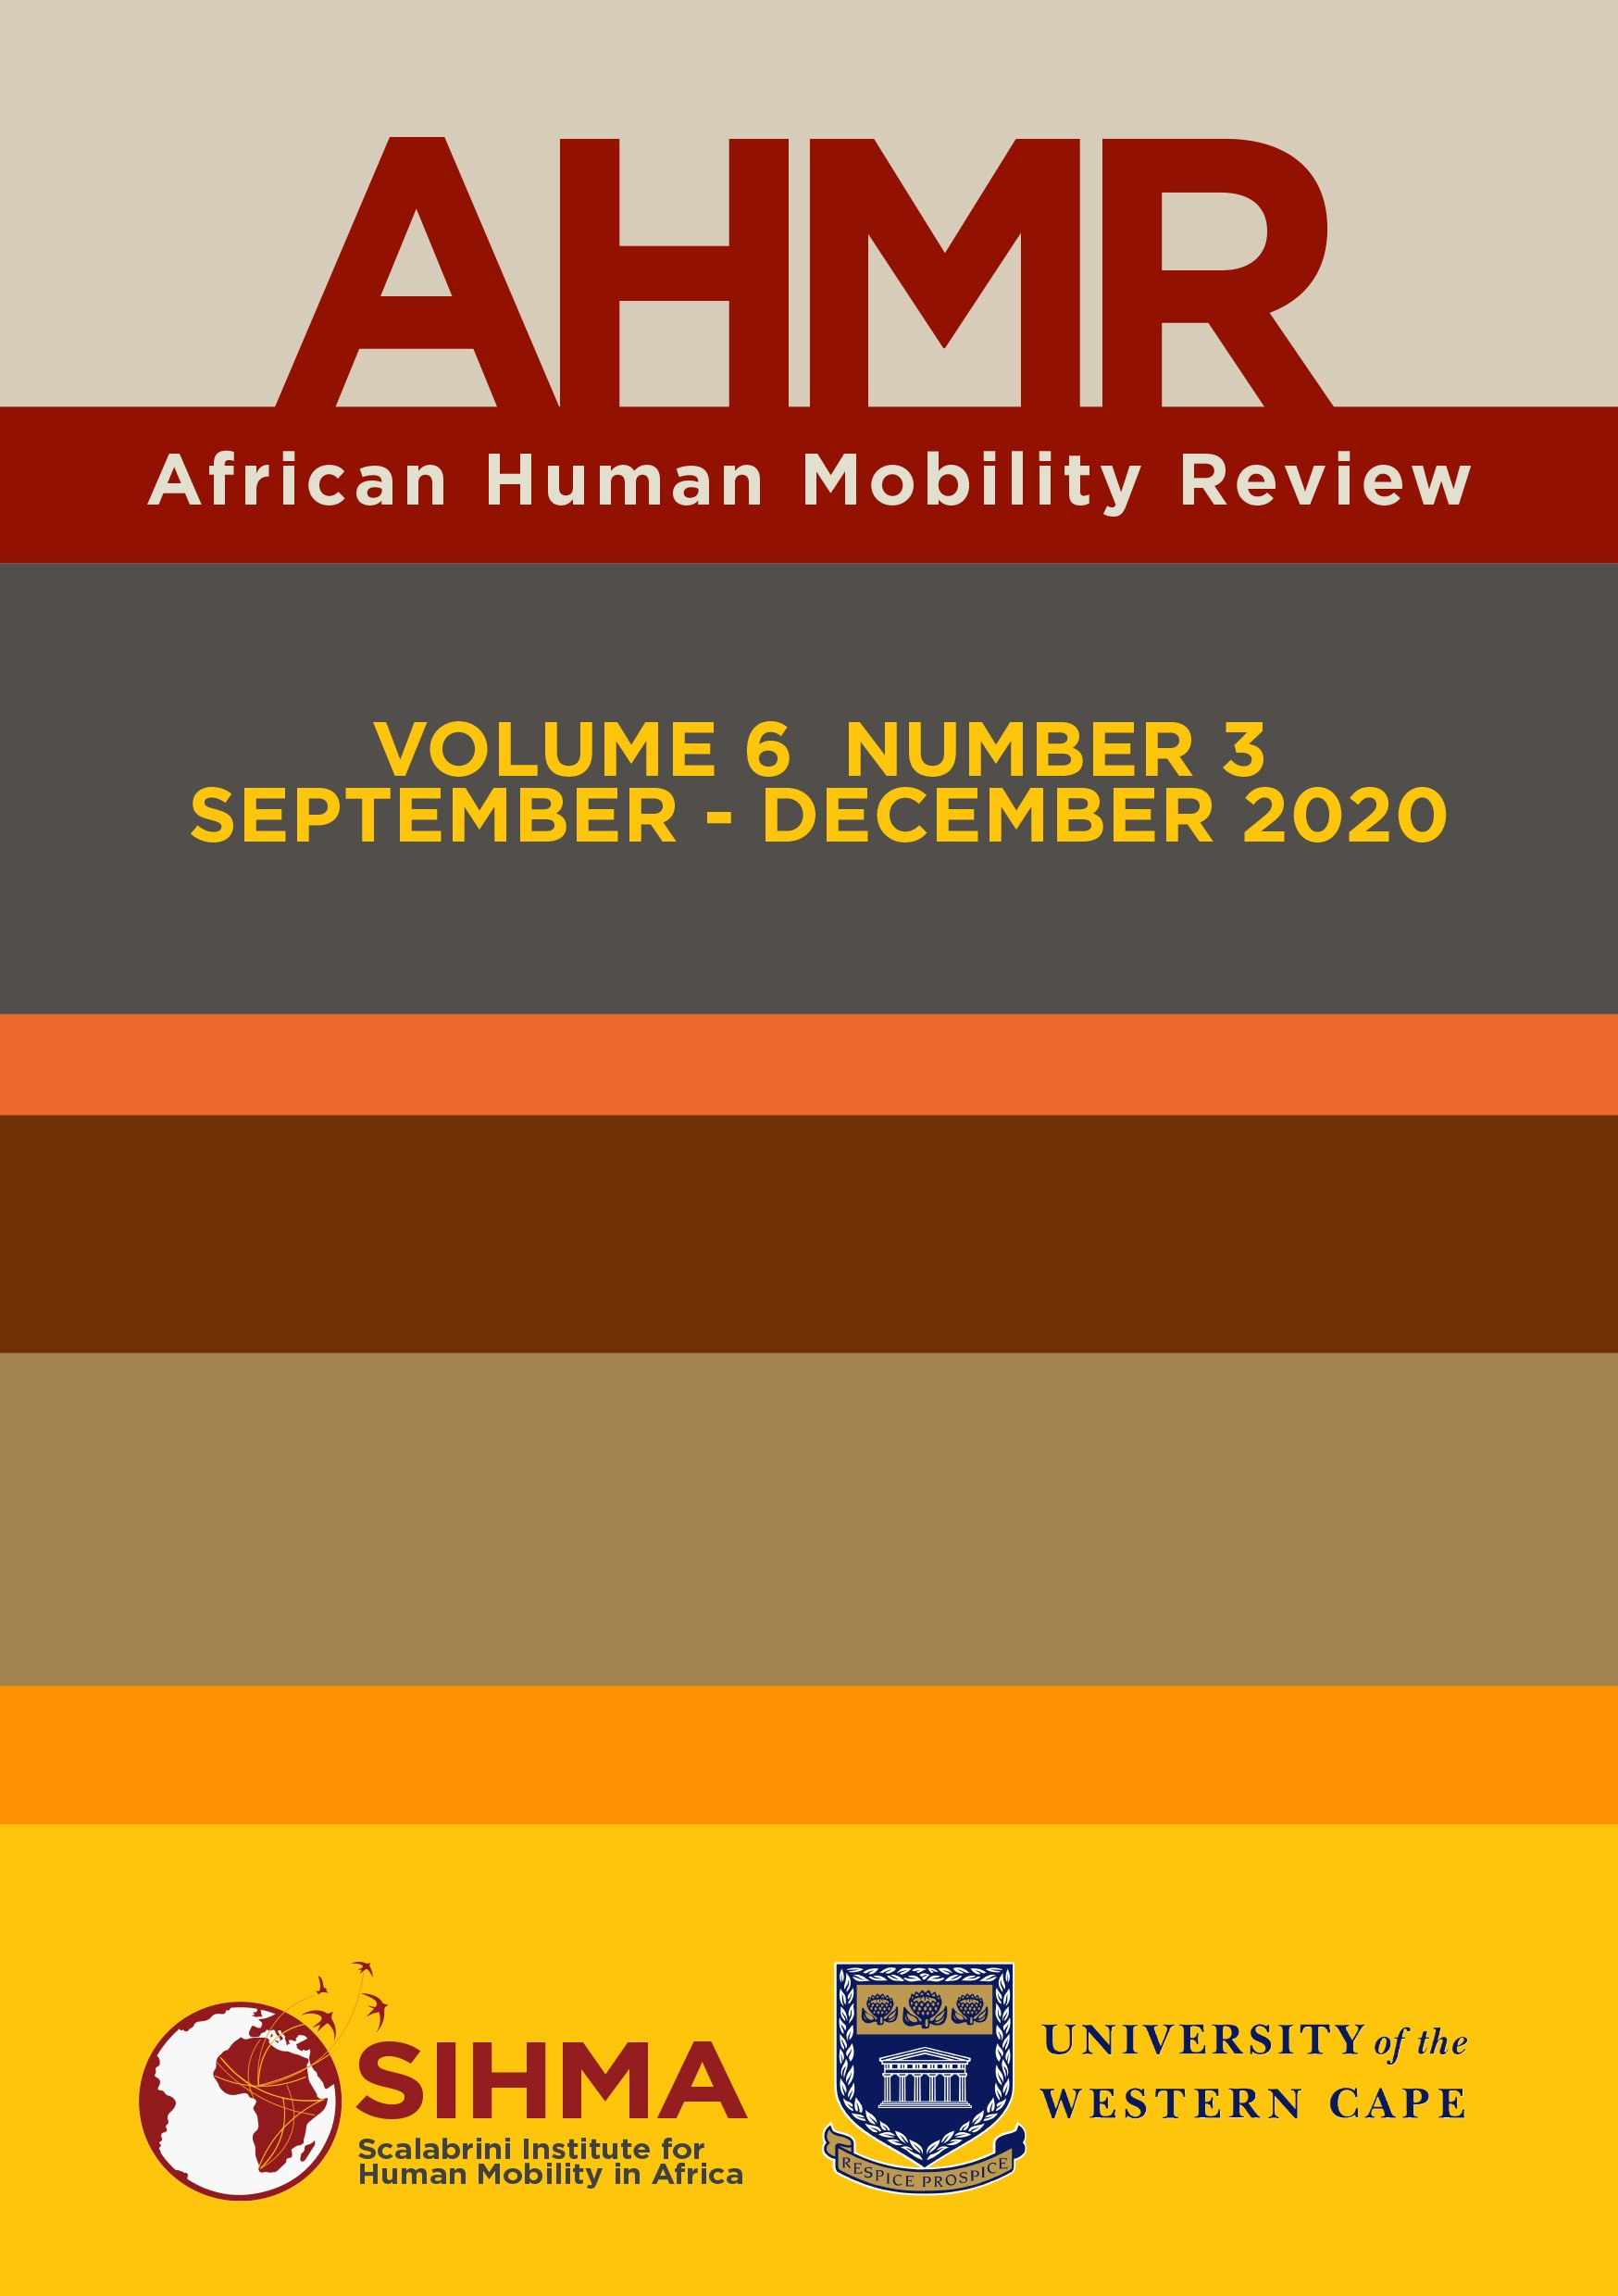 https://www.sihma.org.za/photos/shares/AHMR volume 6 number 3 COVER PRINT-3.jpg